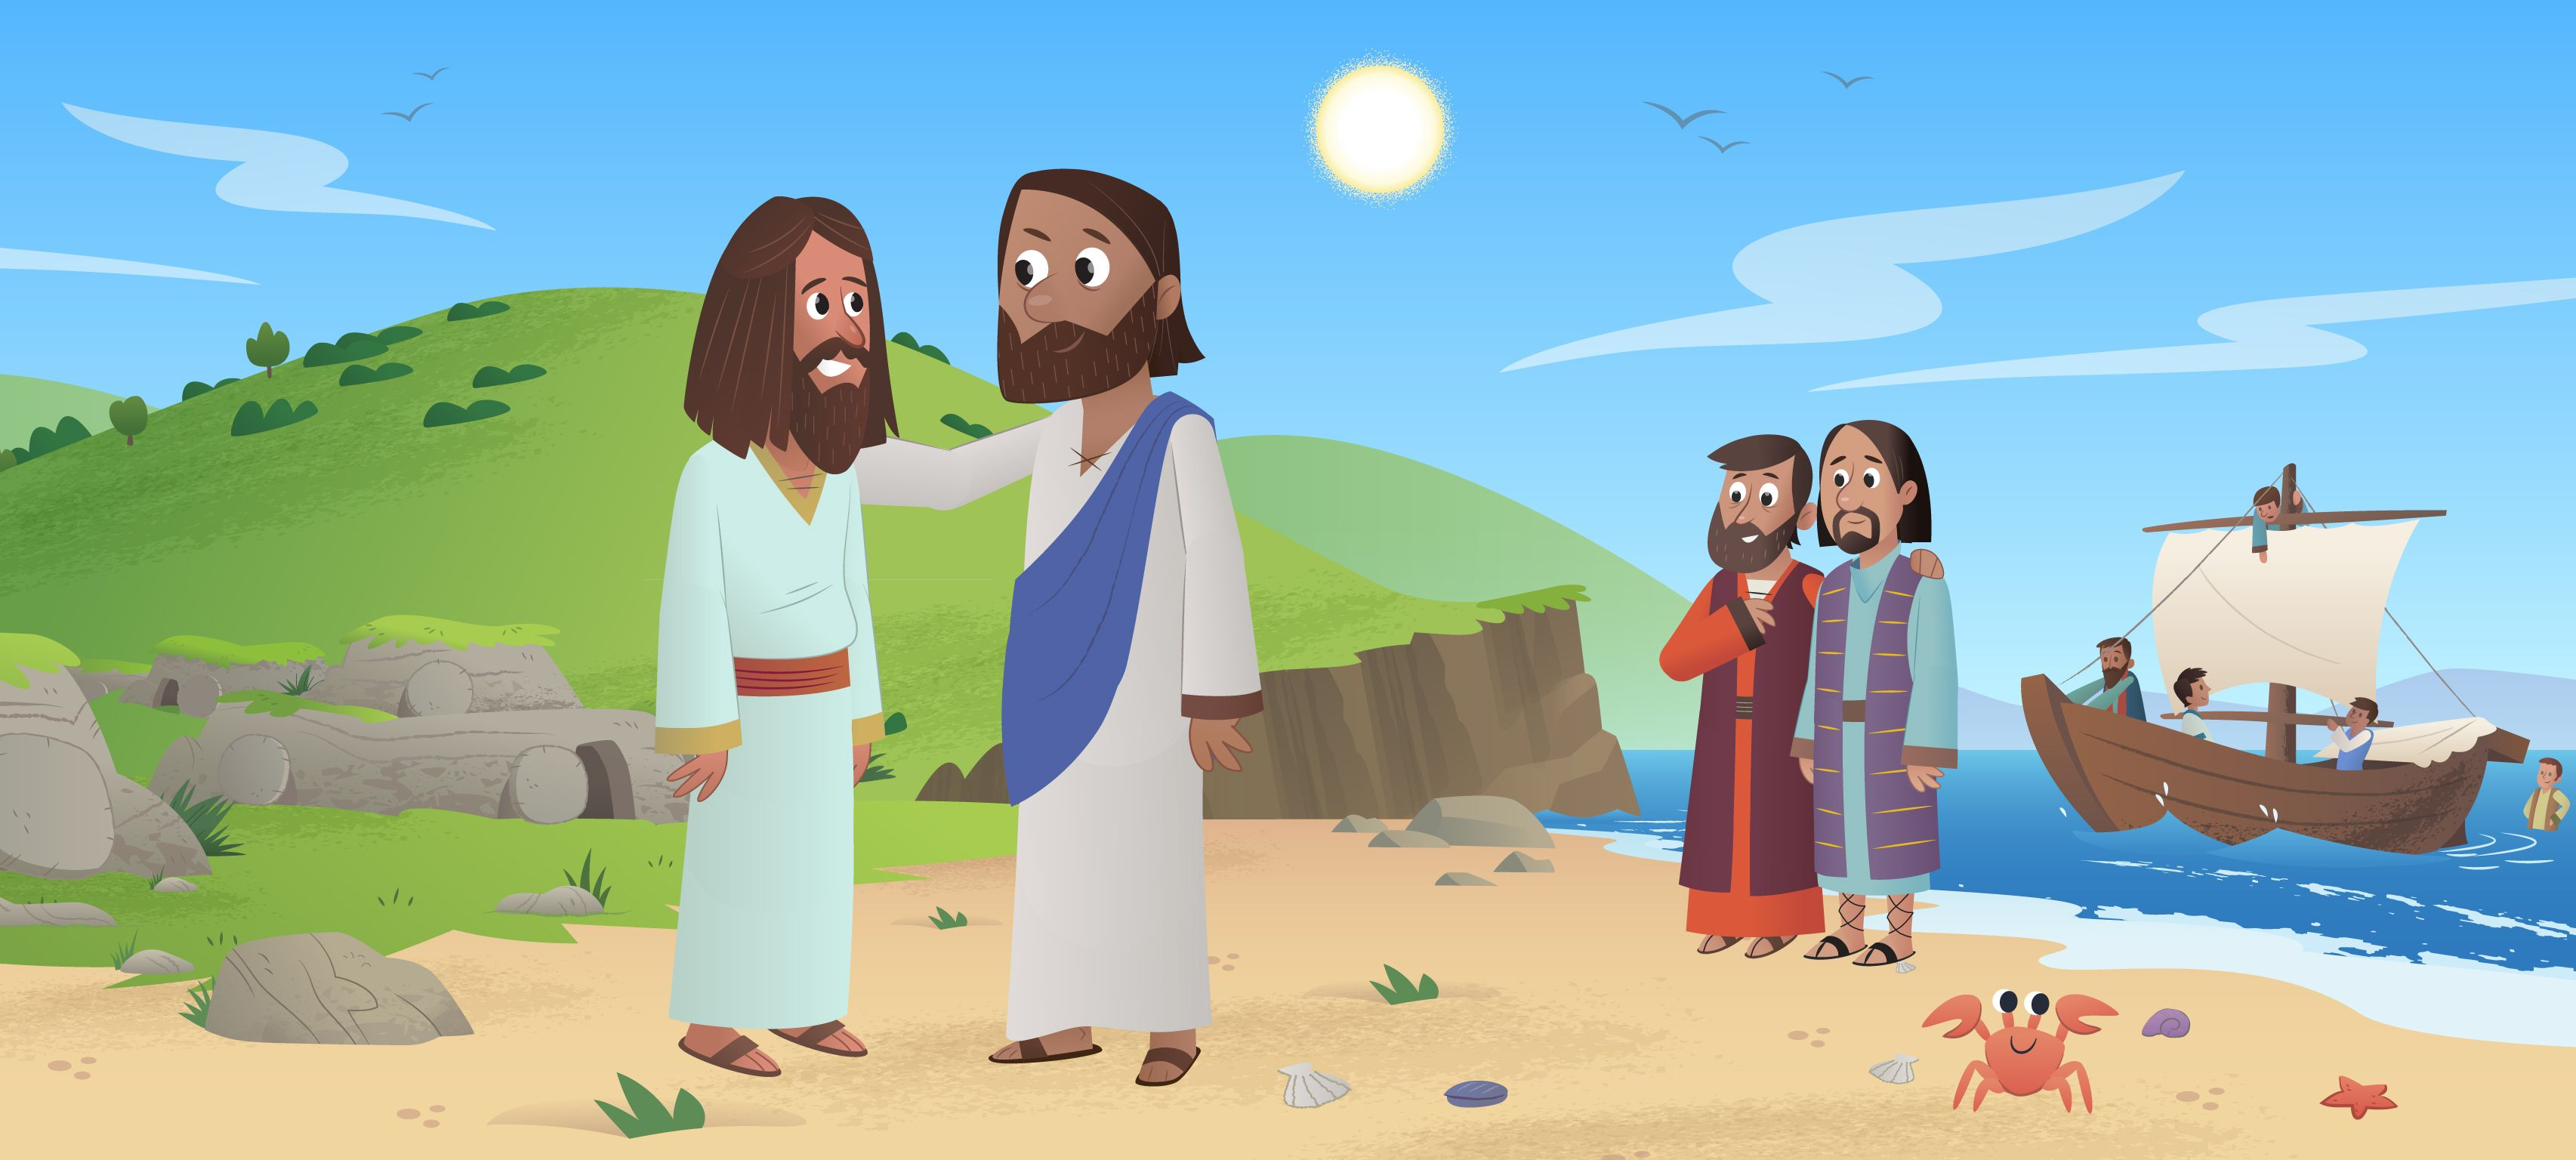 biblical images for kids - Google Search | Clip Art Bible ...